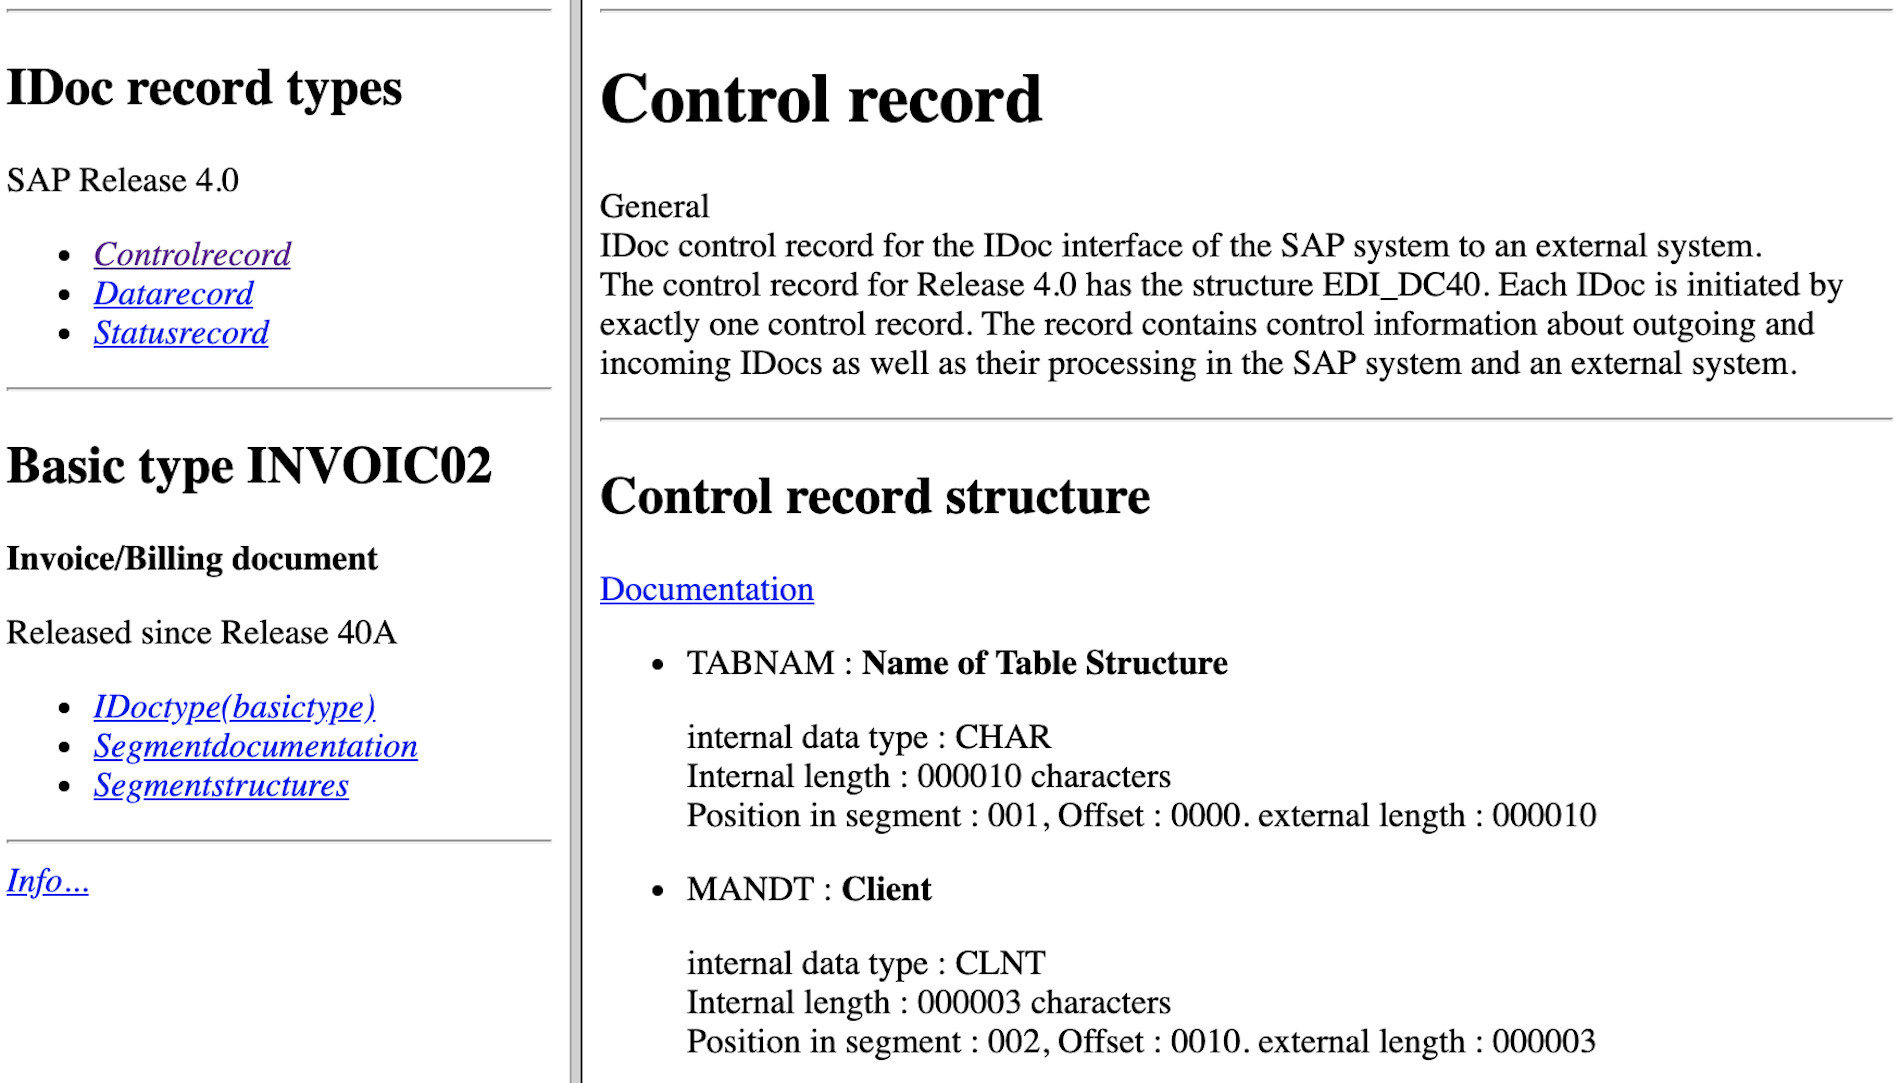 Extract of an INVOIC02 documentation